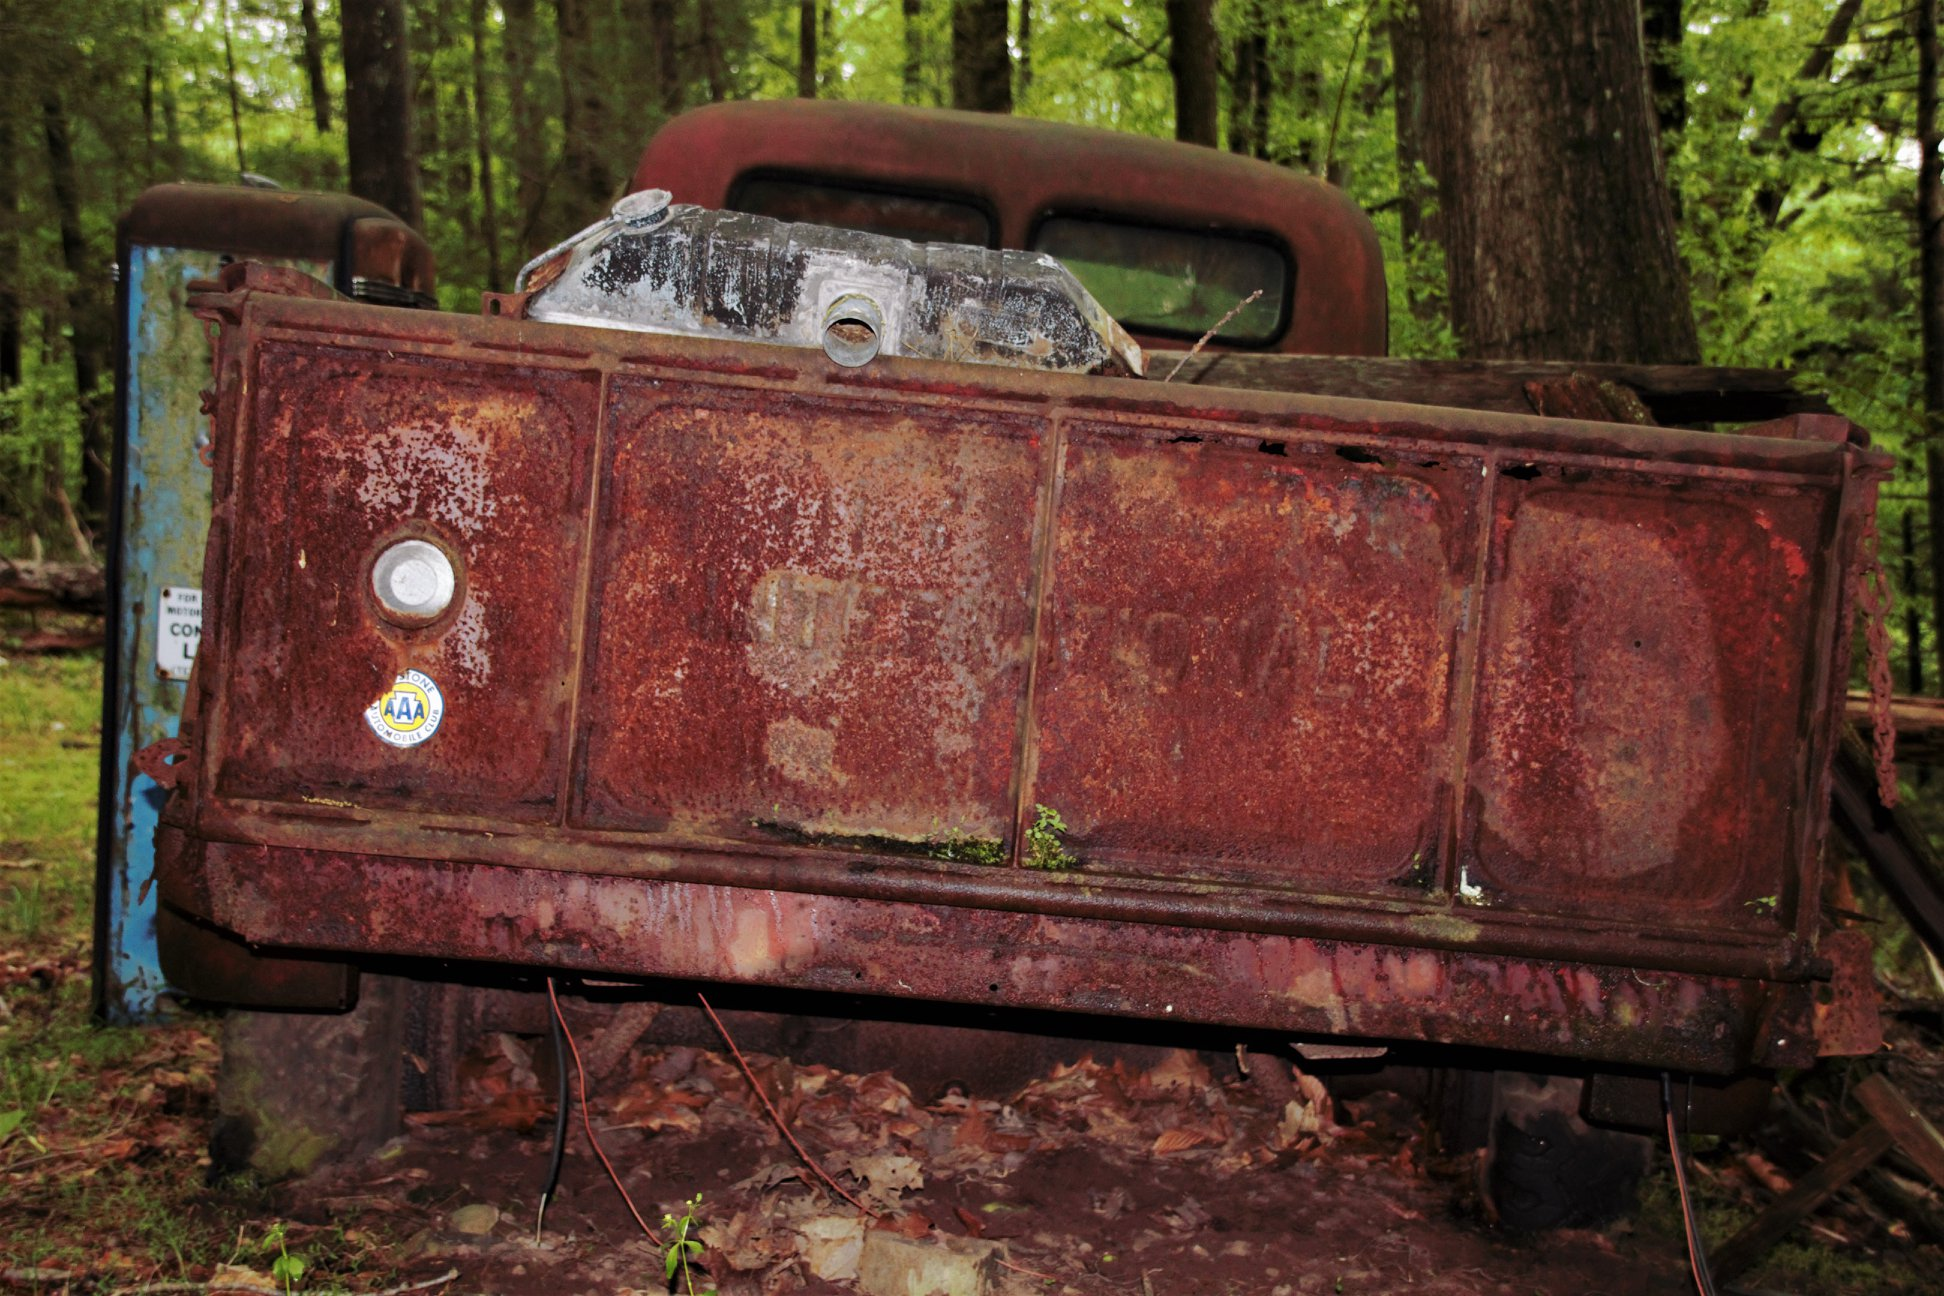 International-L110-Pick-Up-1952-Carversville-USA-2